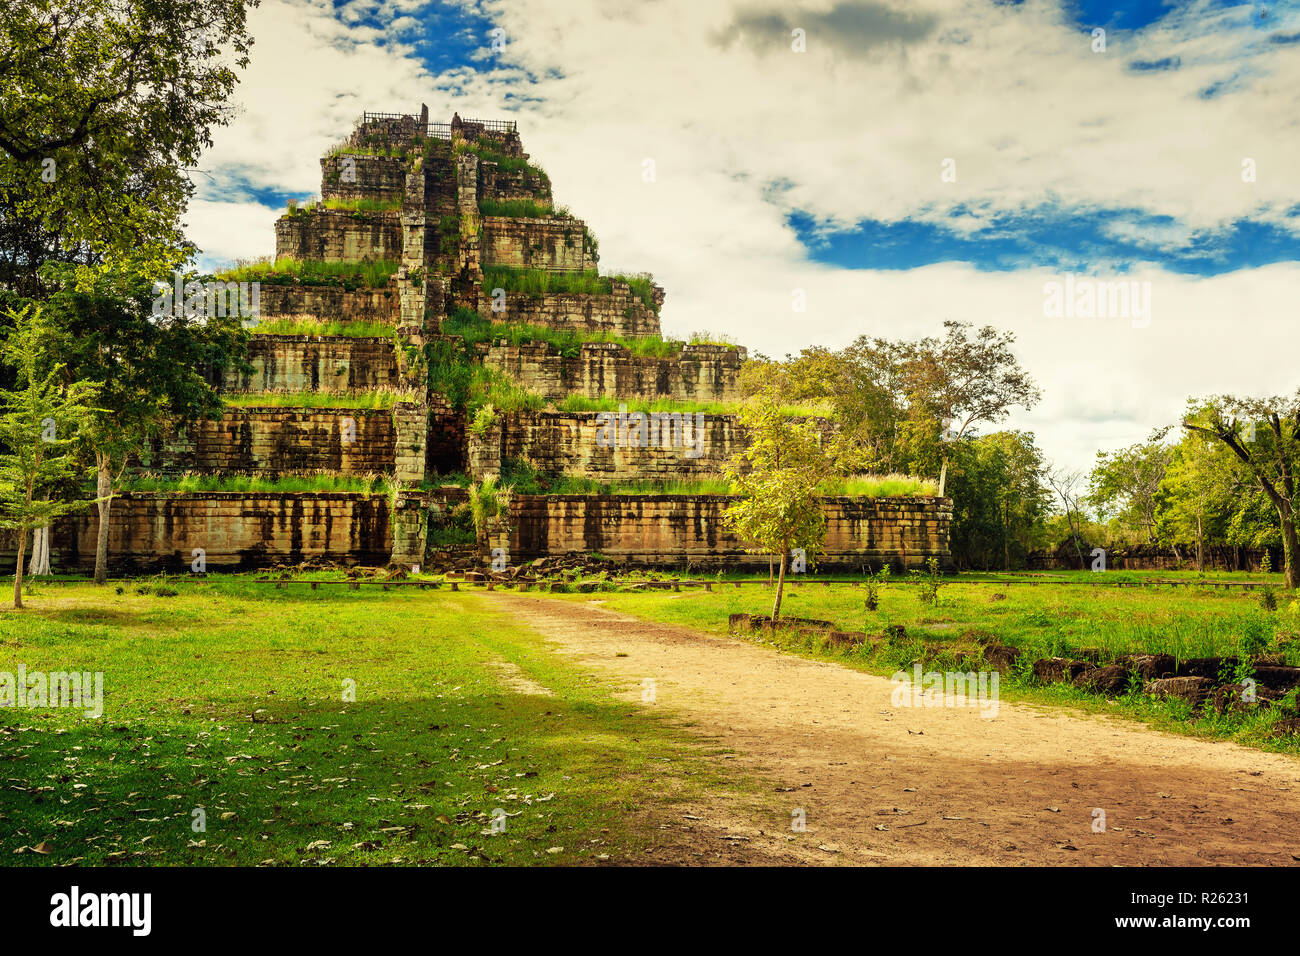 Ancient pyramid death Prasat Thom Koh Ker in Mayan style hidden in tropical rainforest jungle of Cambodia - Stock Image